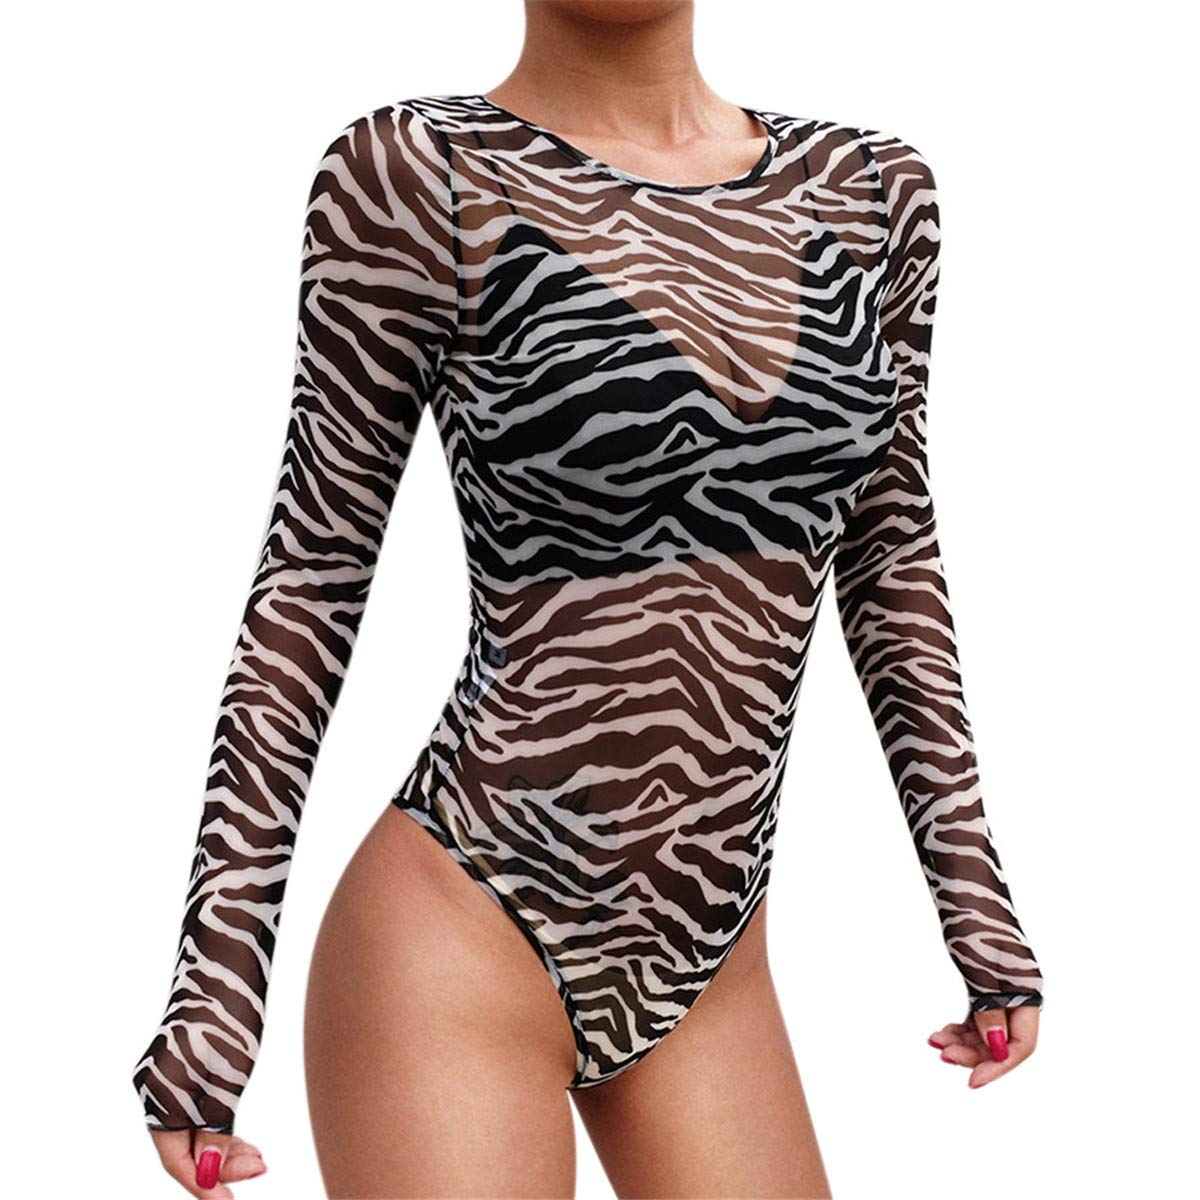 Womens Sexy Cut Out Long Sleeve See Through Bodysuit Clubwear Tops Short Bodysuit Jumpsuits Romper(Black,S)